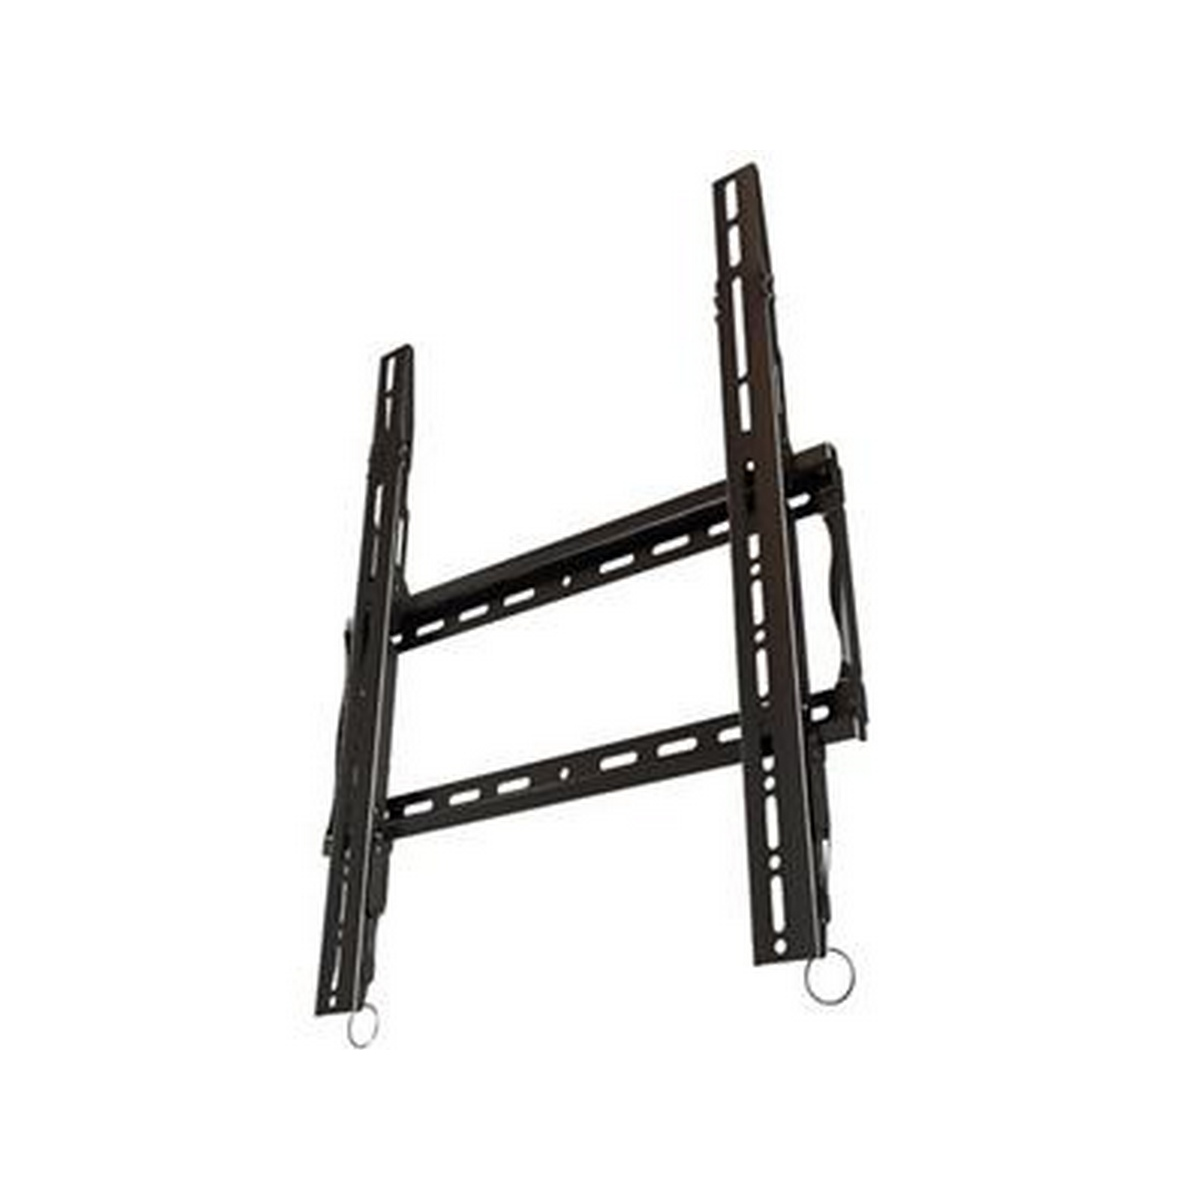 "Crimson FP63 Universal tilting mount for 46"" to 65""+ flat panel screens"